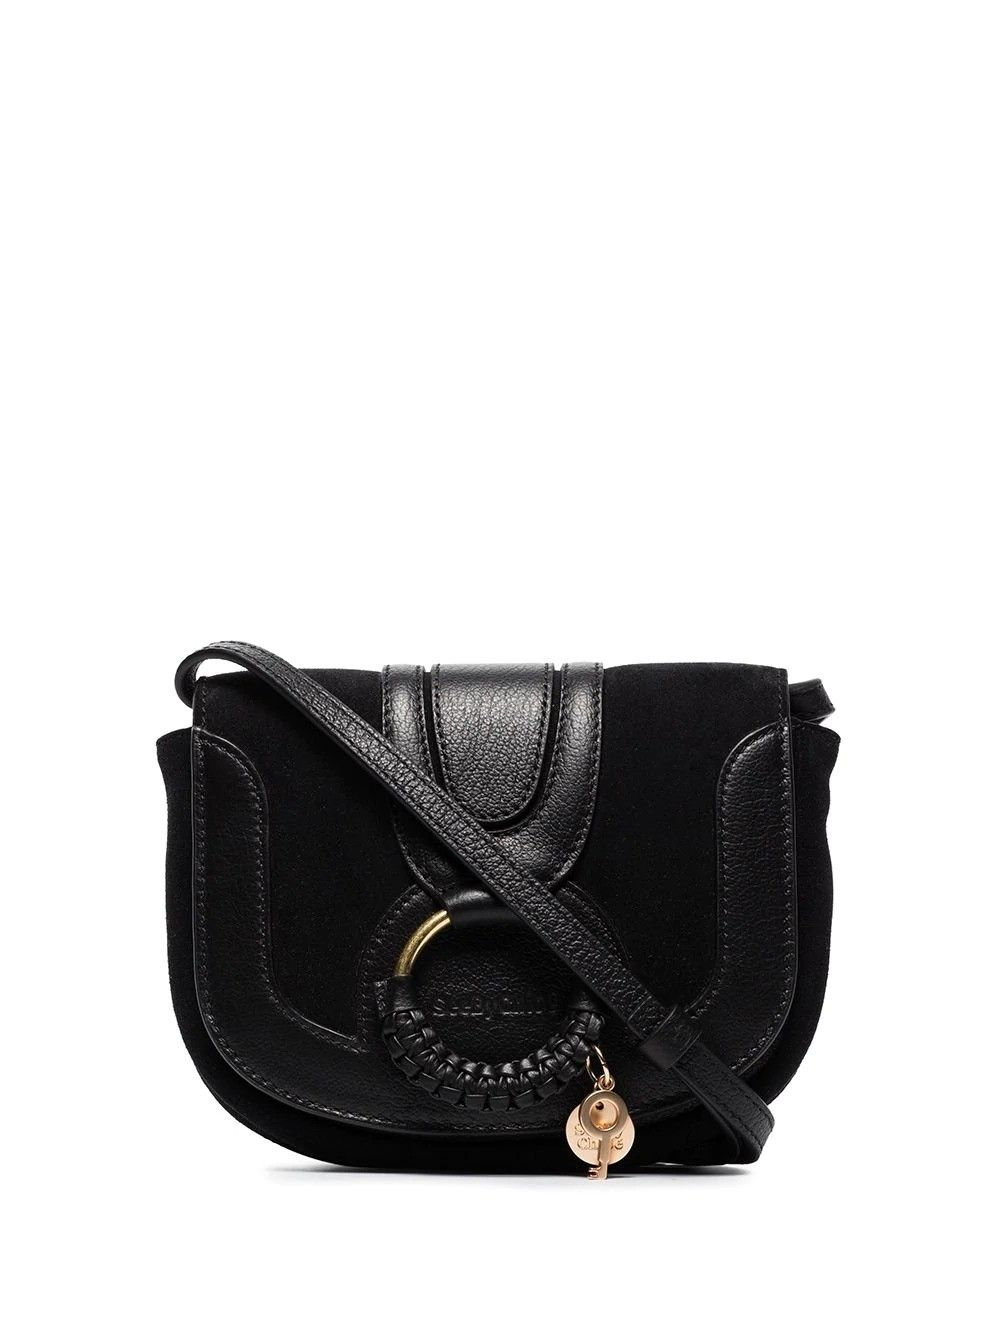 See By Chloé Leathers SEE BY CHLO WOMEN'S CHS18AS901417001 BLACK LEATHER SHOULDER BAG